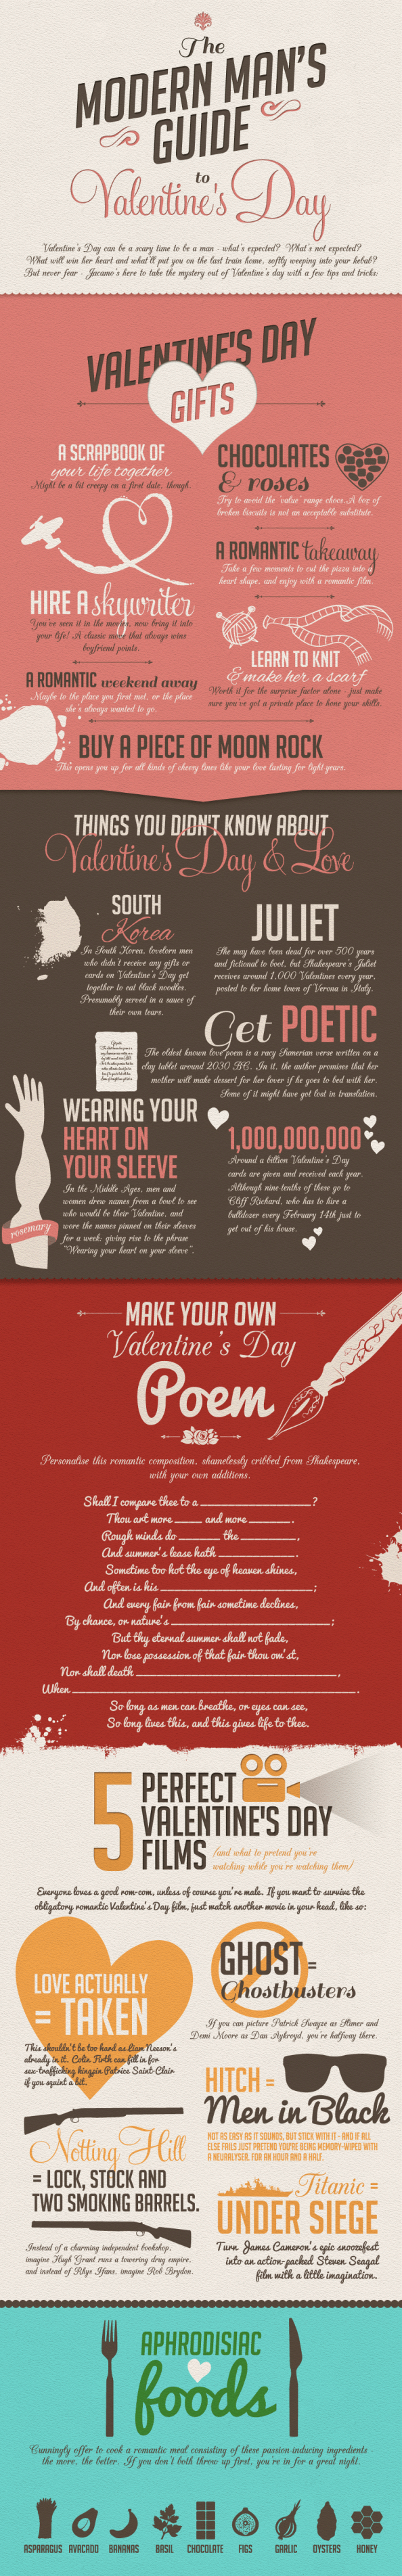 The Modern Man&#039;s Guide to Valentine&#039;s Day Infographic